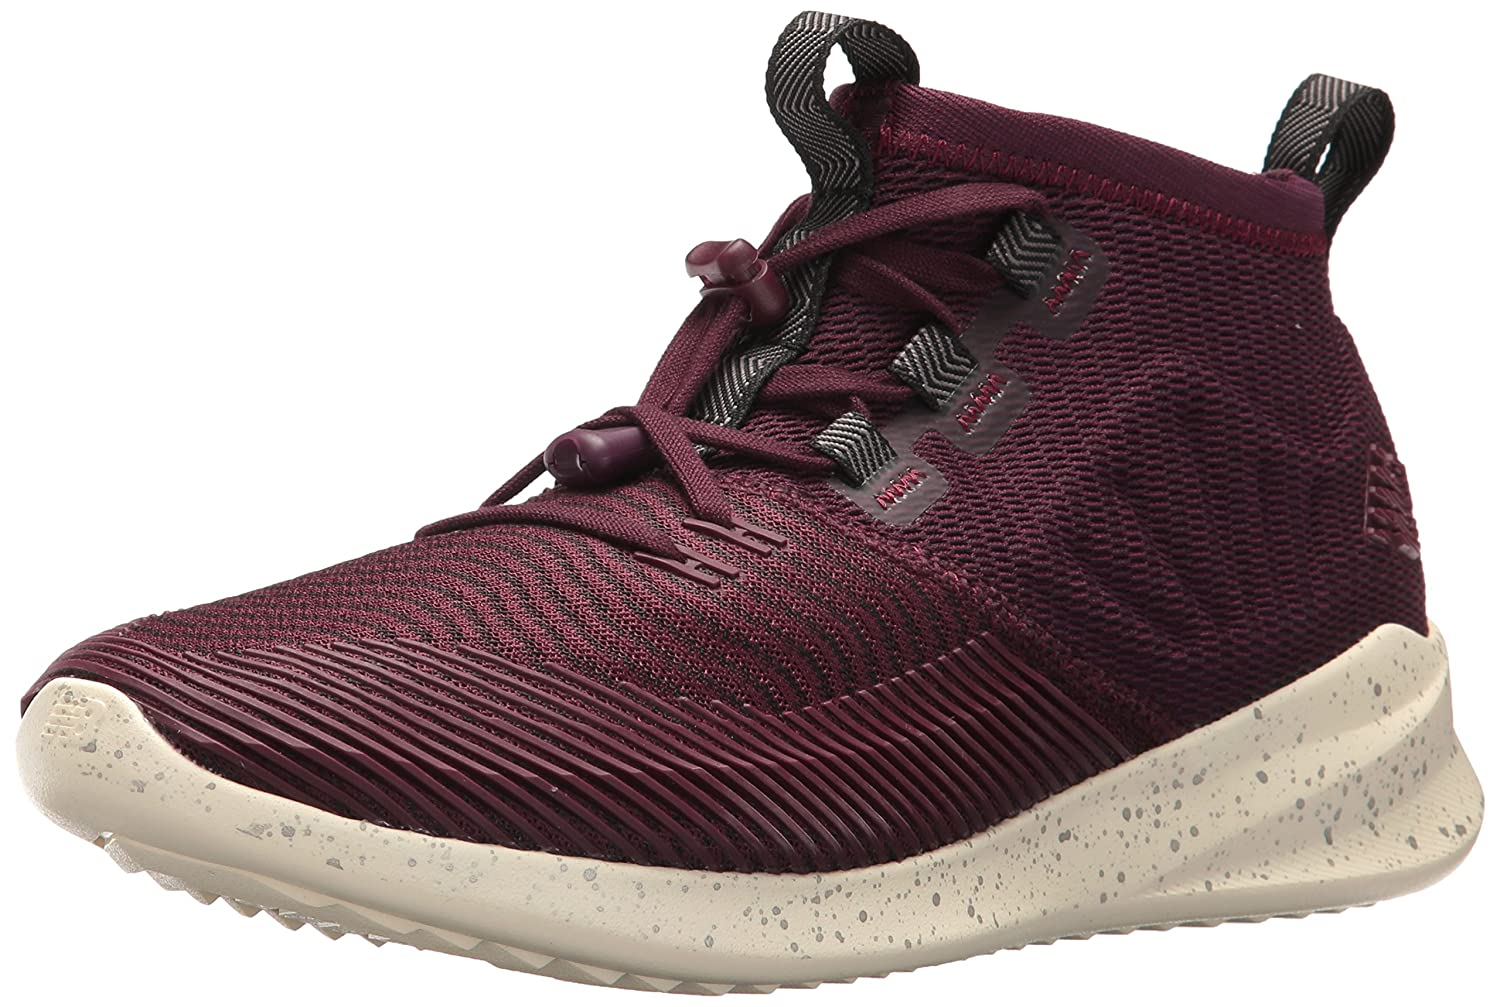 [ニューバランス] Men's Msrmc High-Top Mesh Running Shoe [並行輸入品] Oxblood/Angora 13 D(M) US